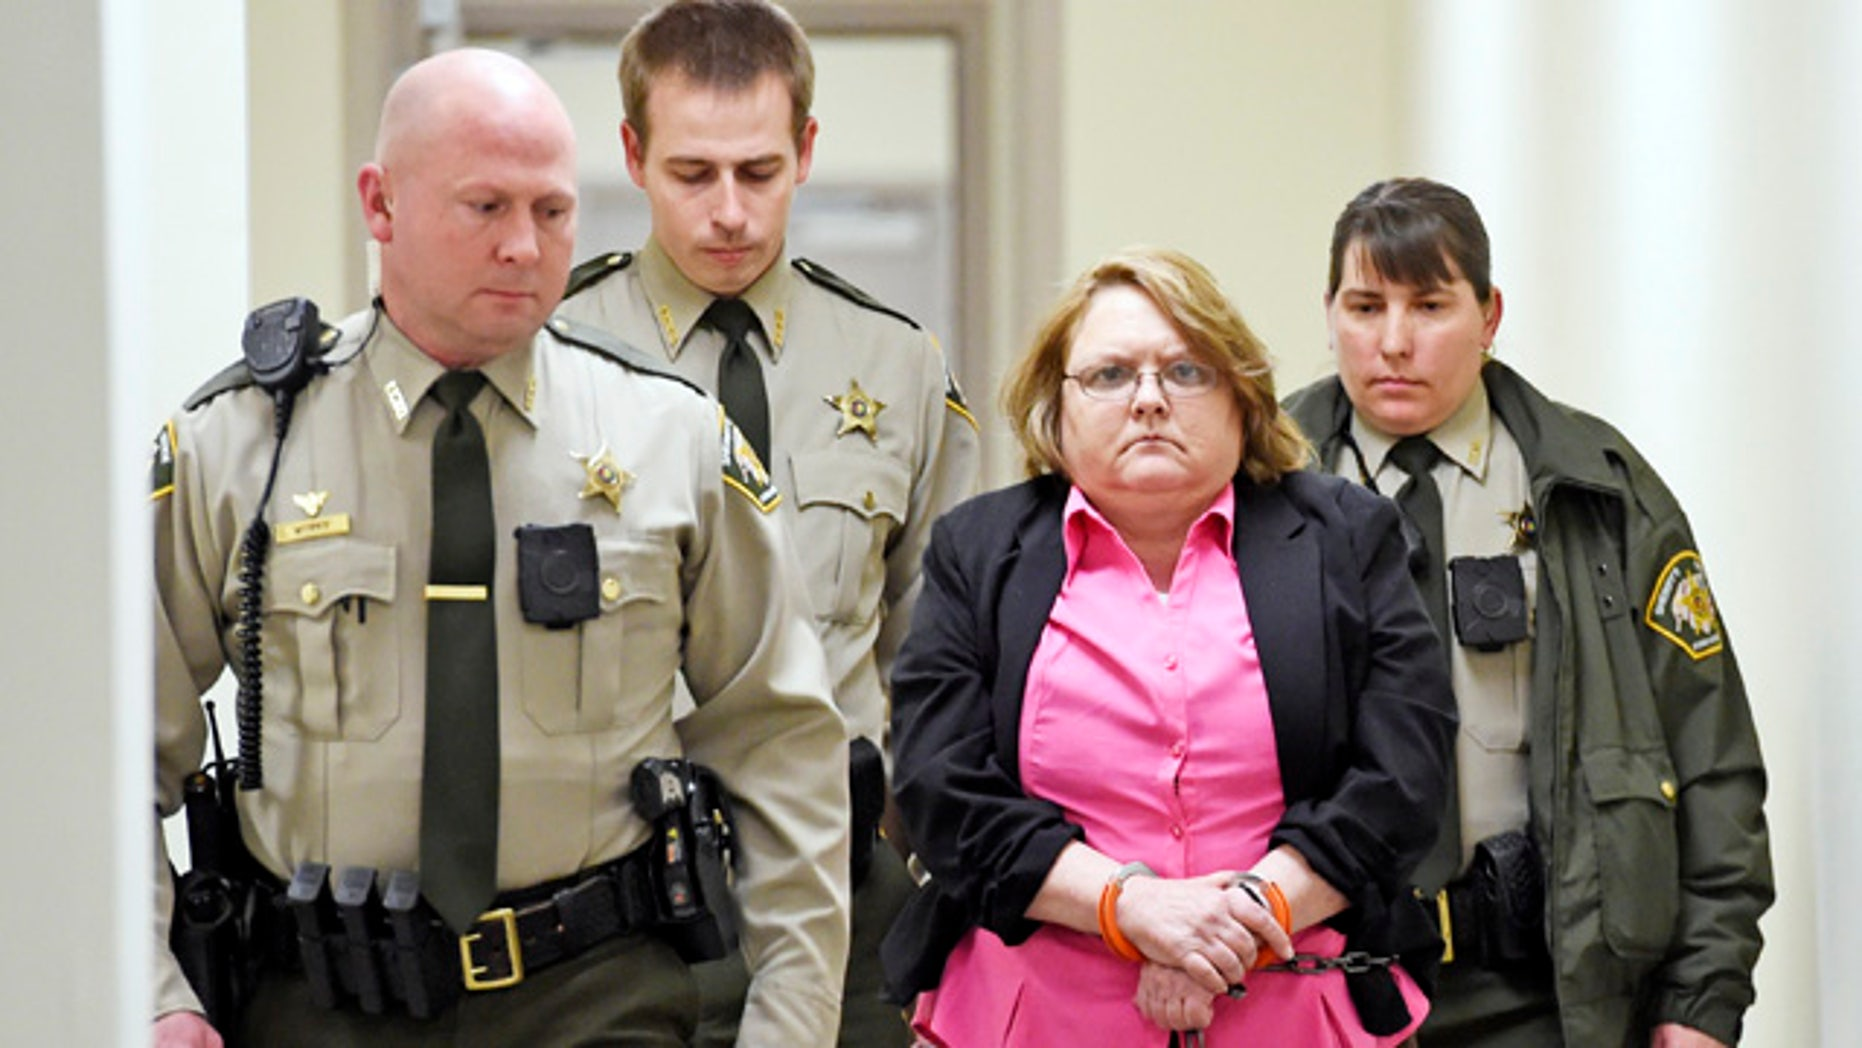 FILE - In this March 20, 2015, file photo, Joyce Hardin Garrard is led back to the Etowah County Detention Center in Gadsden, Ala. (Eric T. Wright/The Gadsden Times via AP, File)